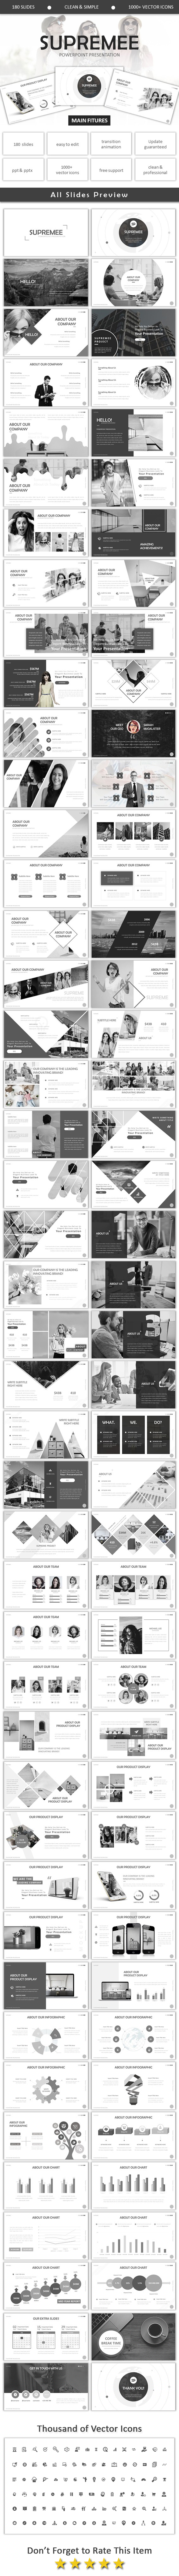 Supremee Powerpoint - Business PowerPoint Templates